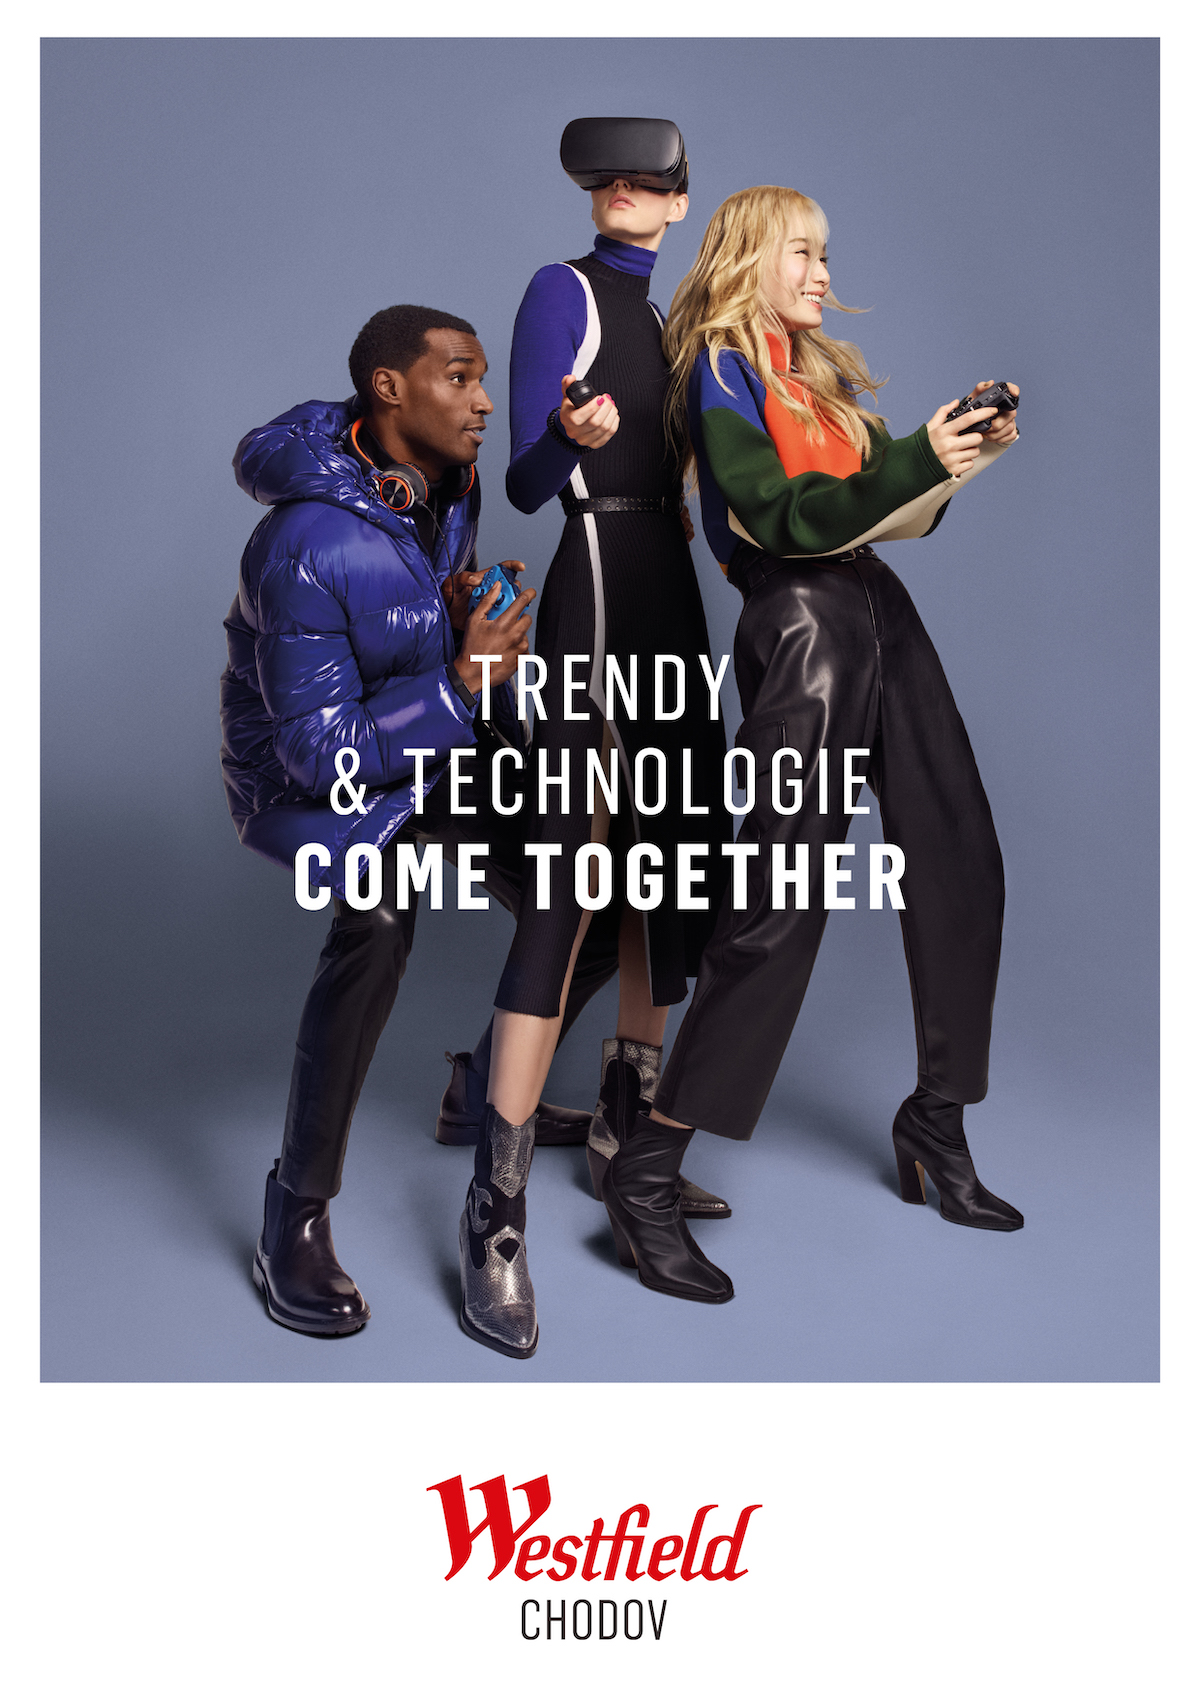 Come Together: Trendy & technologie